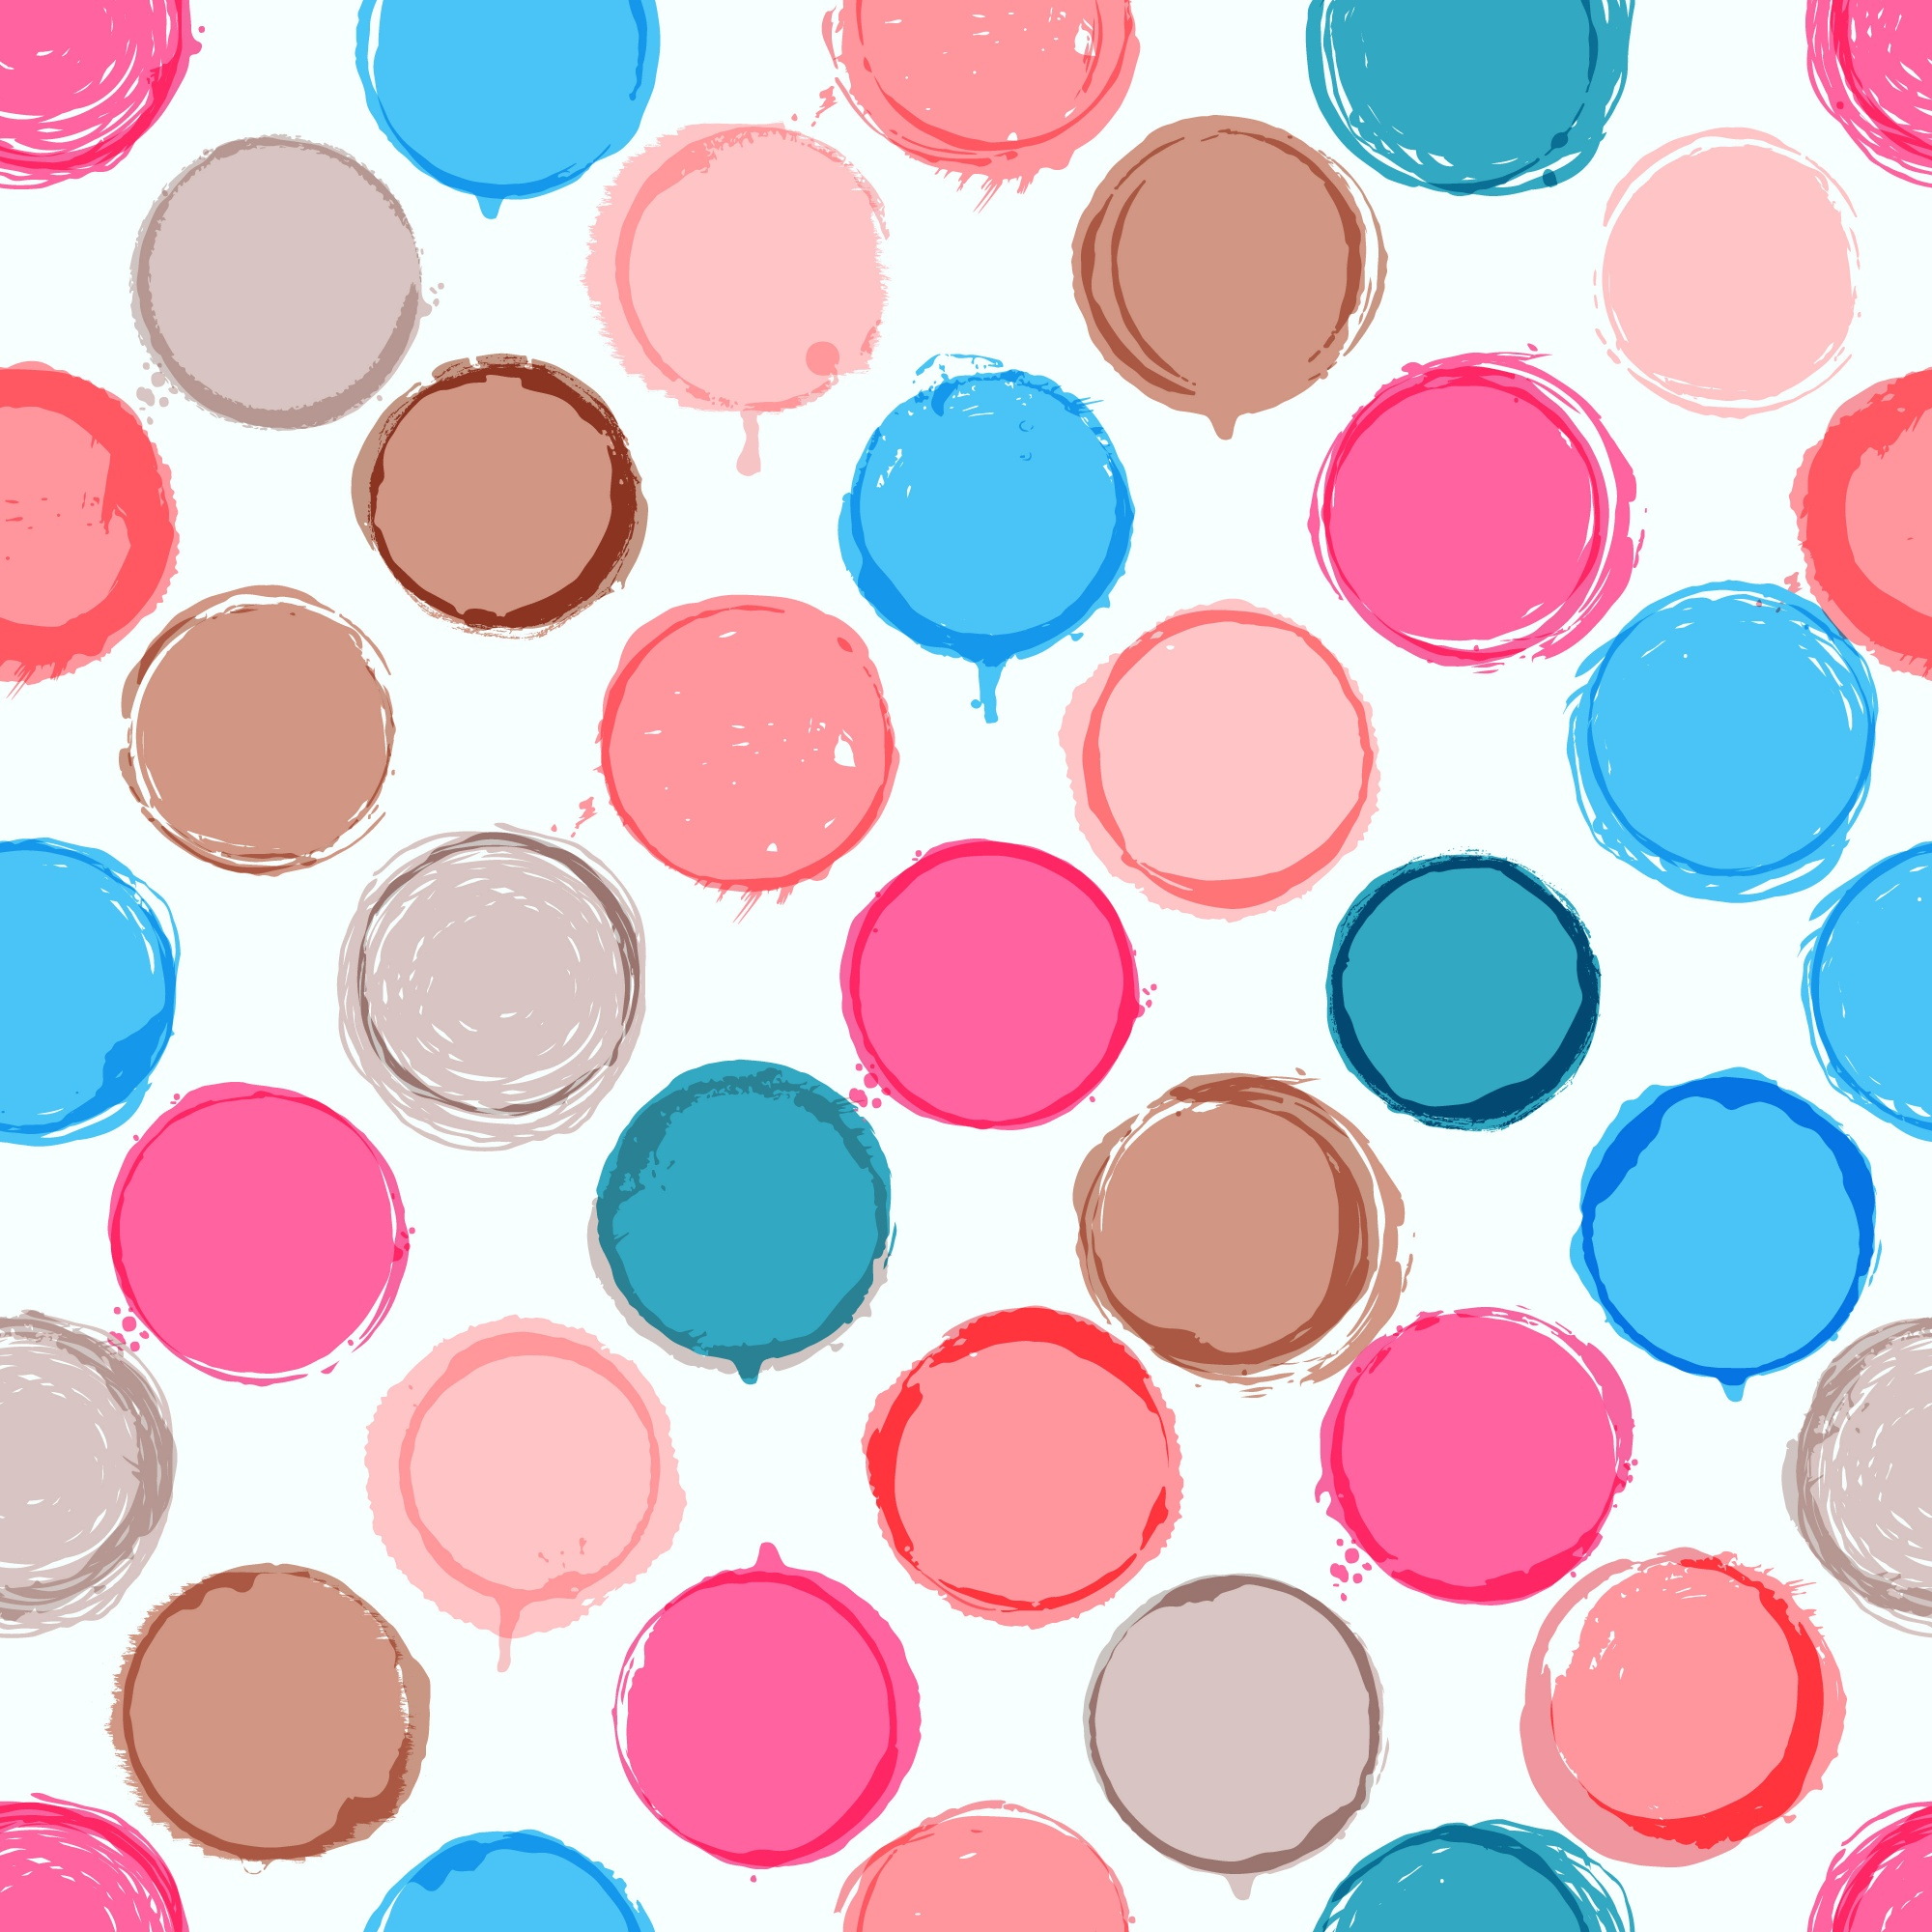 Colorful hand drawn pattern of circles